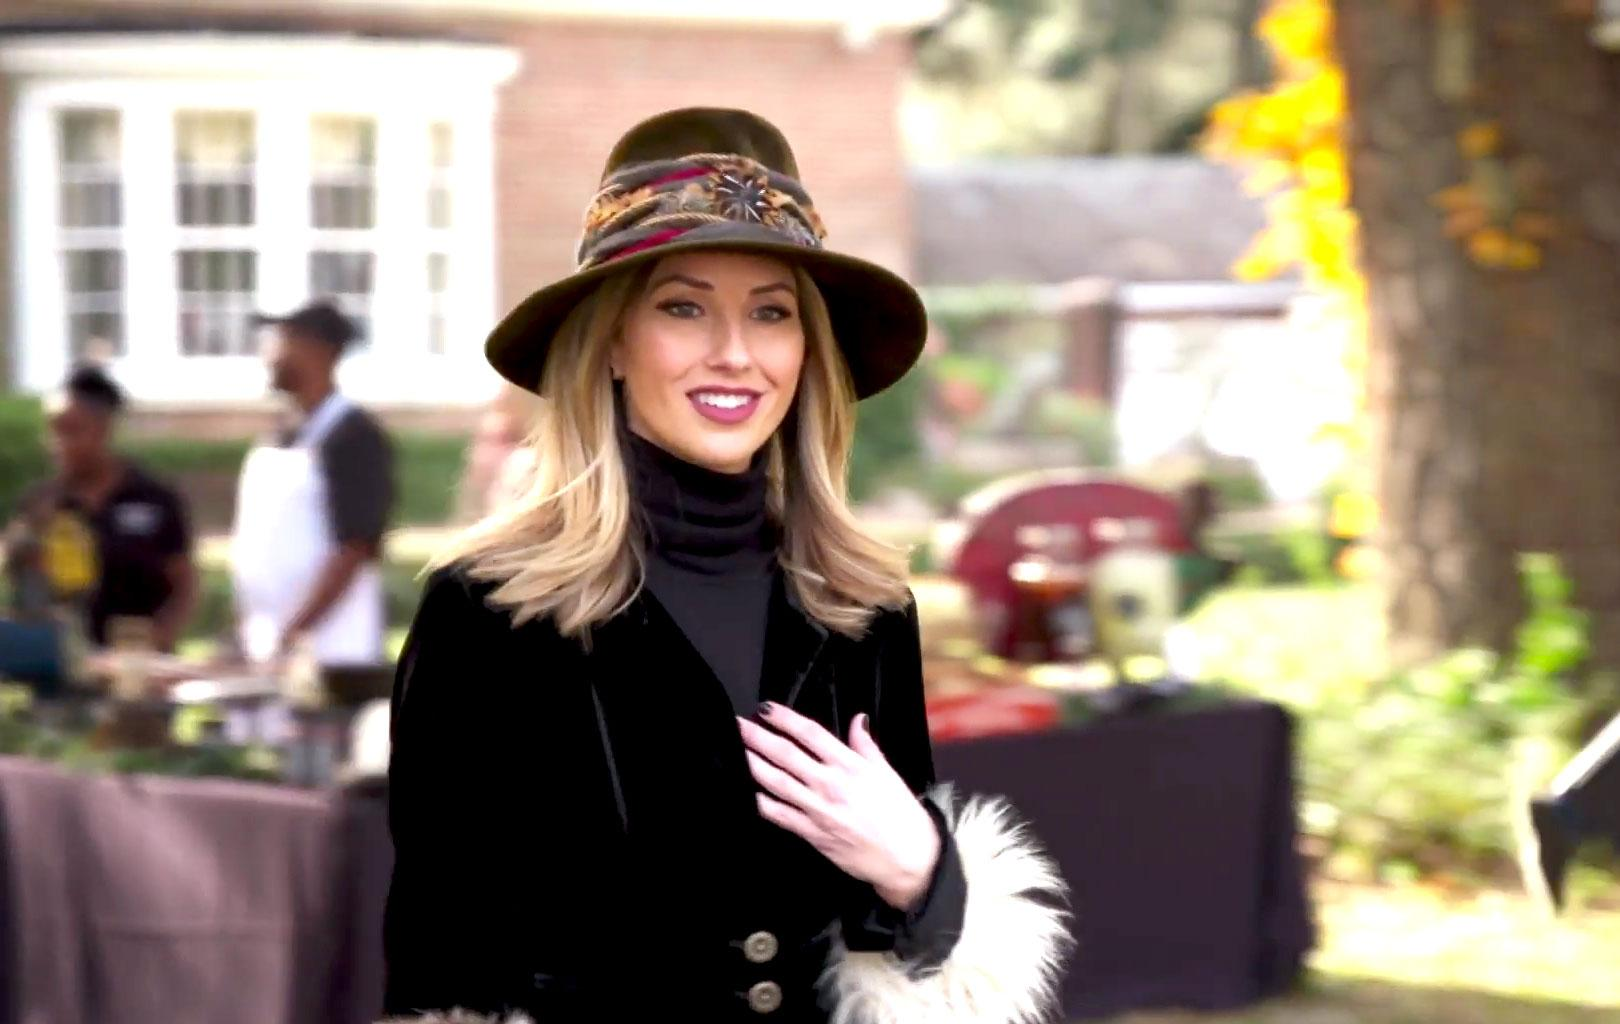 Southern Charm Alum Ashley Jacobs Gives Heartbreaking Insight On Being A Nurse During Coronavirus Pandemic